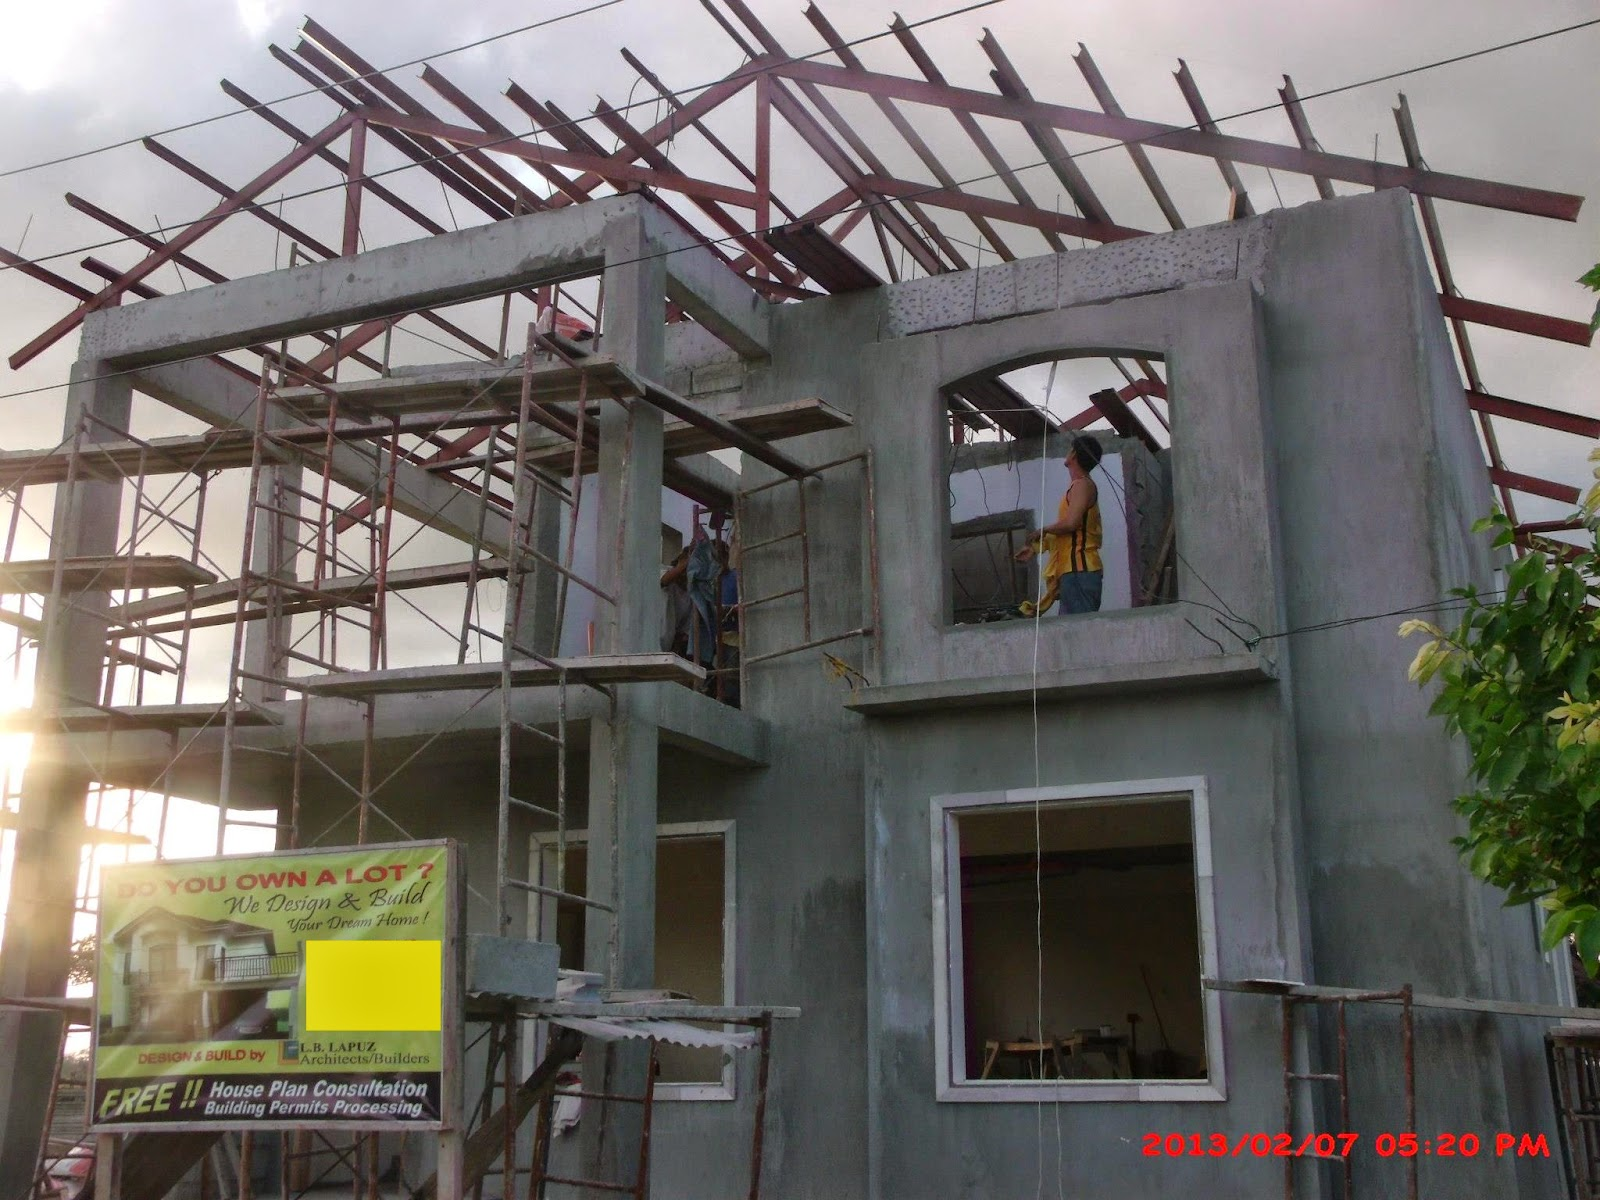 Savannah trails house construction project in oton iloilo House deaigns